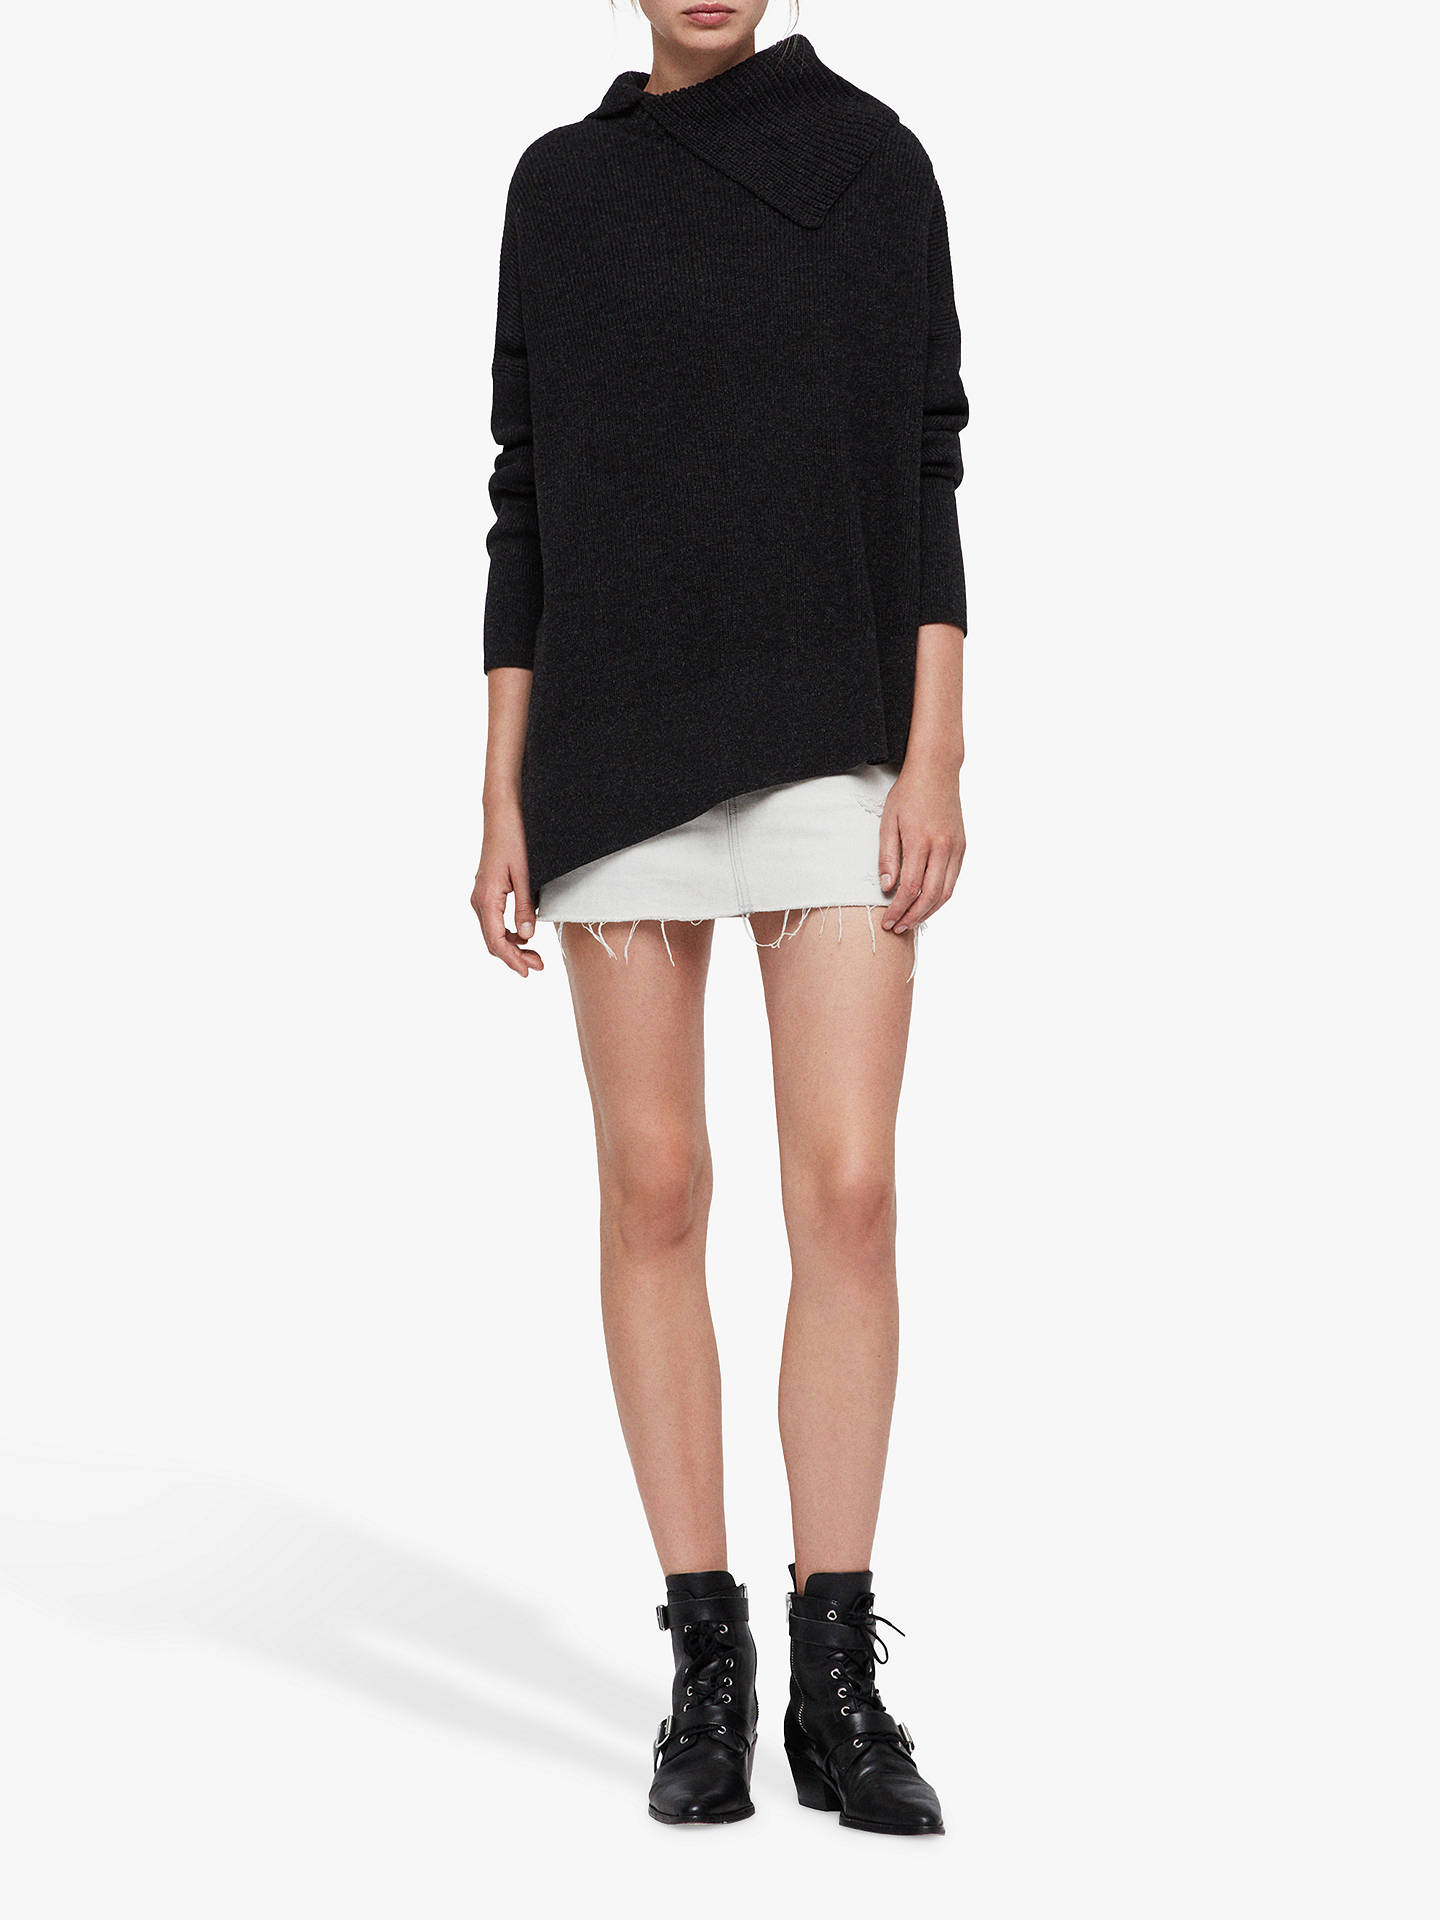 BuyAllSaints Hettie Asymmetric Collar Jumper, Cinder Black Marl, L Online at johnlewis.com